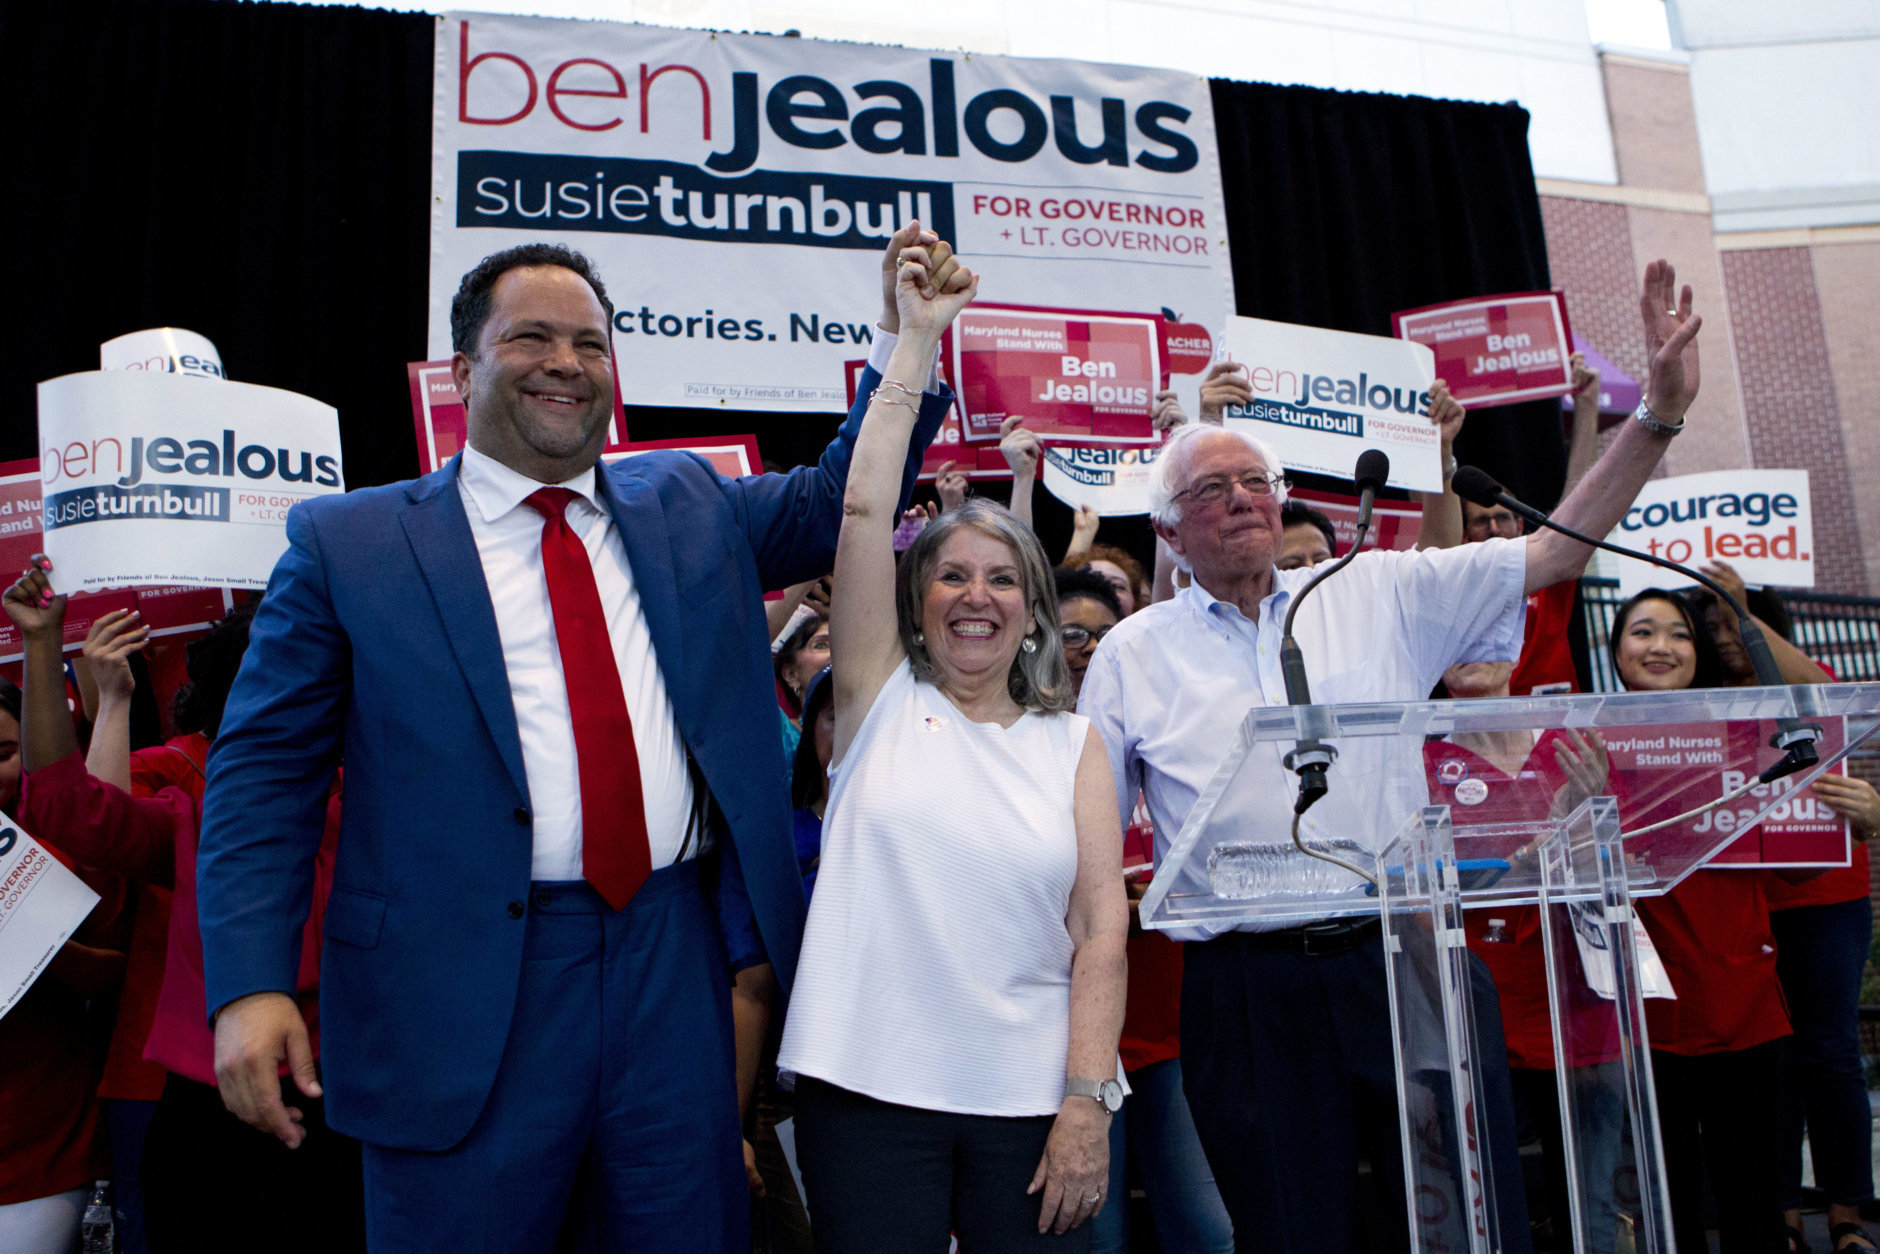 Democrat Ben Jealous, left, raises the hand of his running mate Susie Turnbull, while Sen. Bernie Sanders, I-Vt., waves during a gubernatorial campaign rally in Maryland's Democratic primary in downtown Silver Spring, Md., Monday, June 18, 2018. Sanders may not be endorsing his own son's congressional bid, but he rallied on a hot Monday night in Maryland to fire up voters for Jealous' campaign for governor. (AP Photo/Jose Luis Magana)